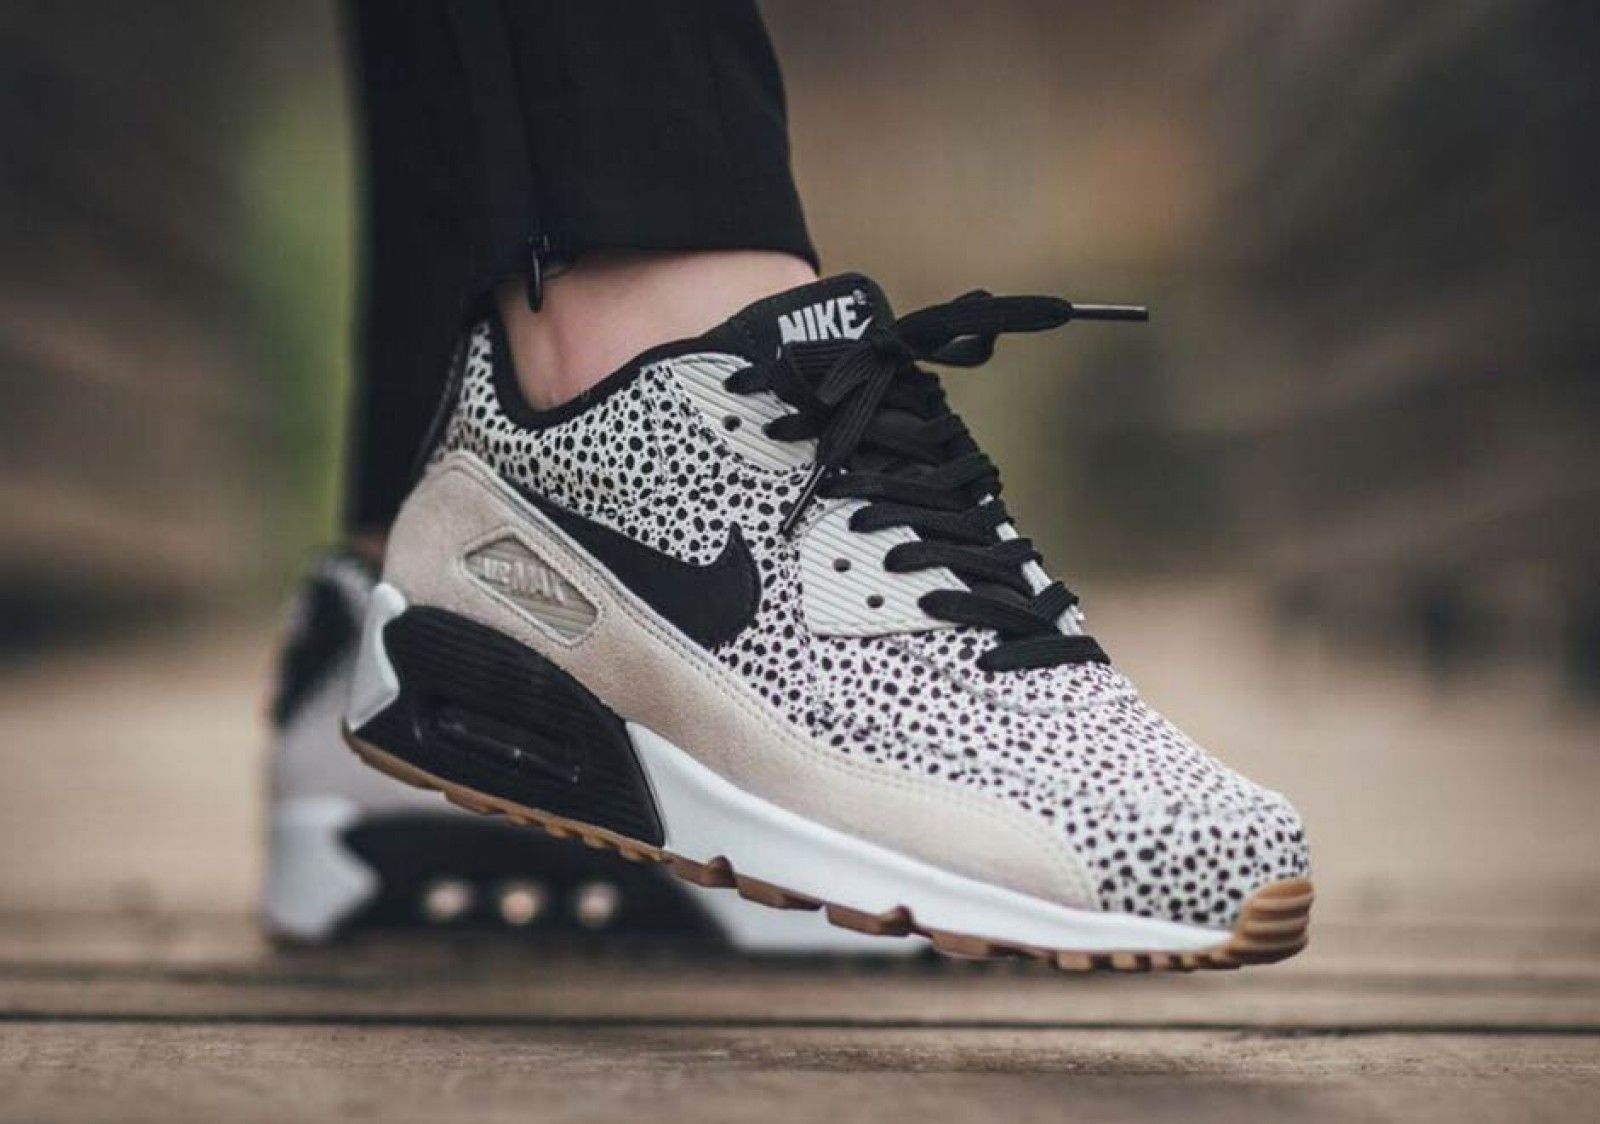 Nike Wmns Air Max 90 PRM WhiteBlack Gum Light Brown